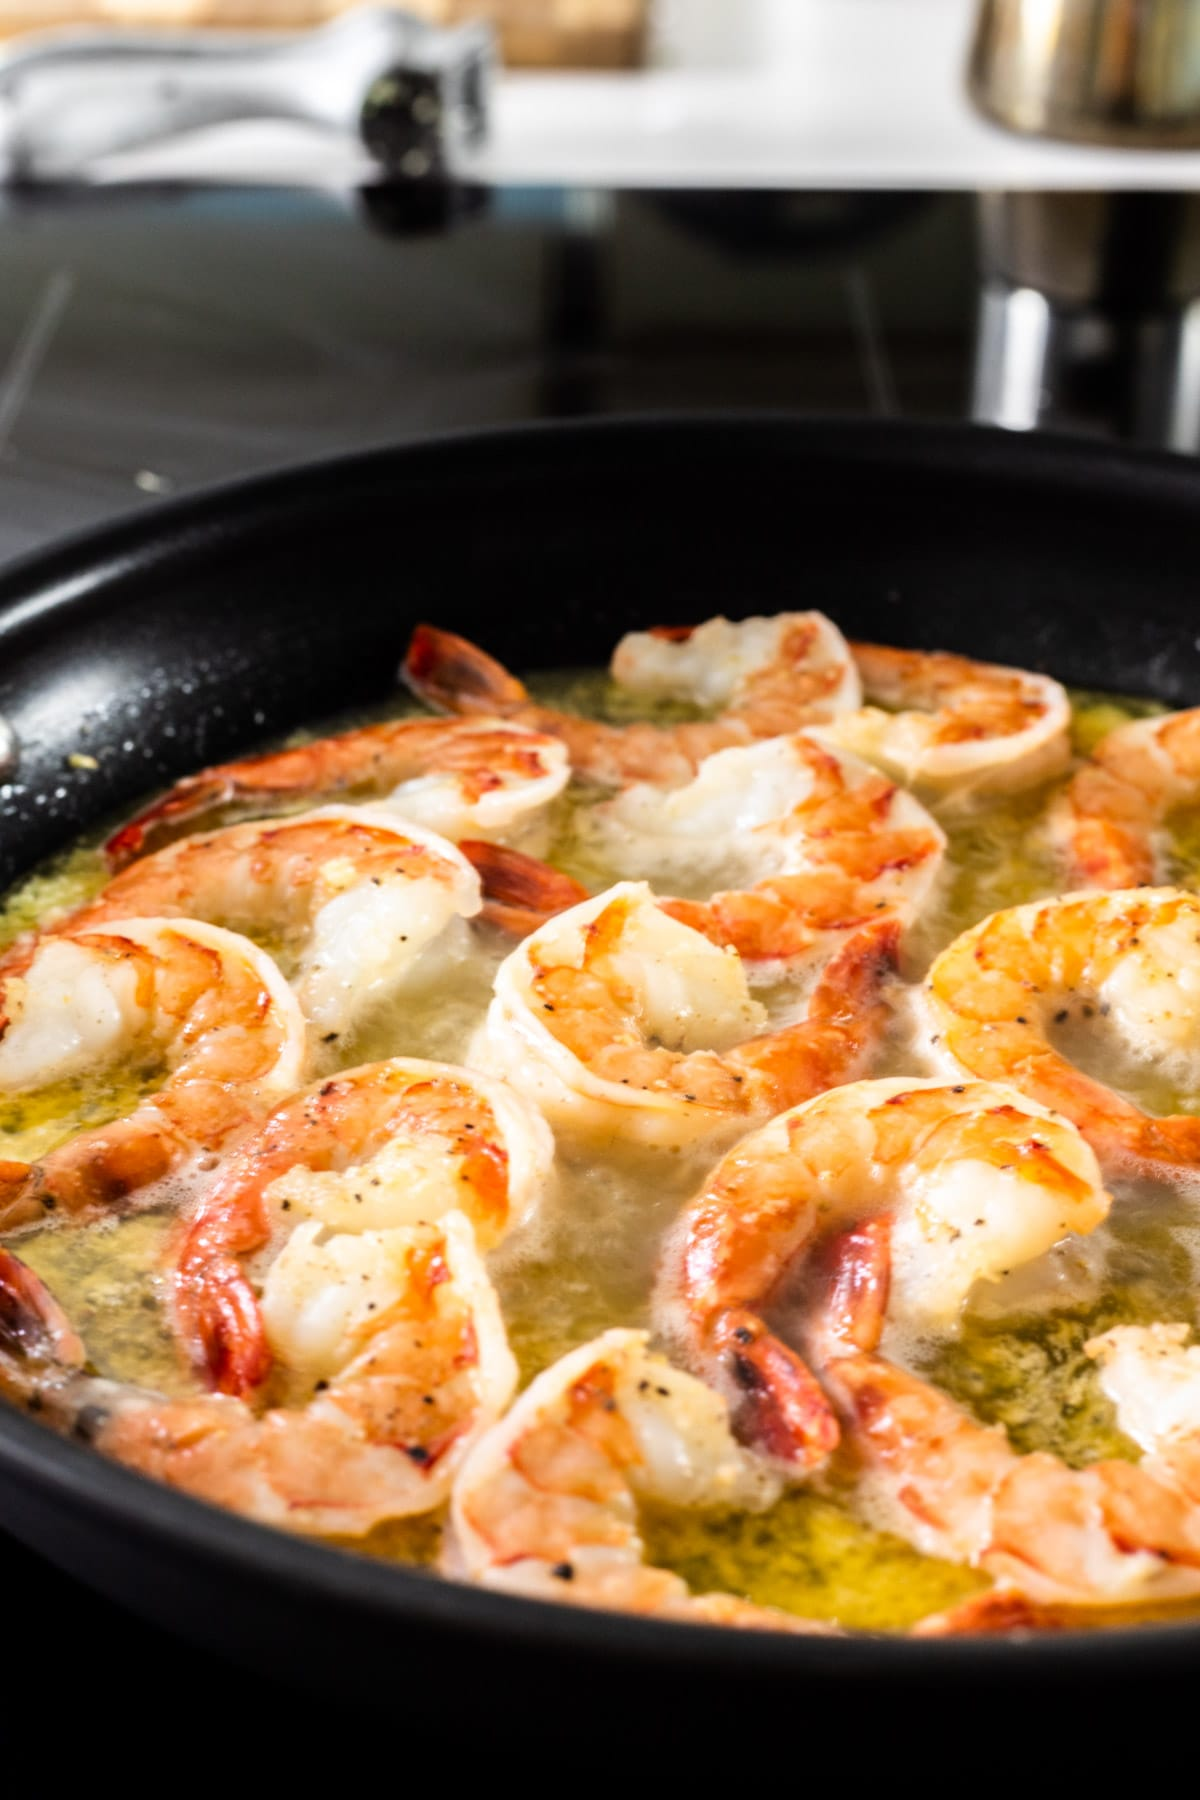 Seasoned shrimp cooking in a skillet of butter and oil.